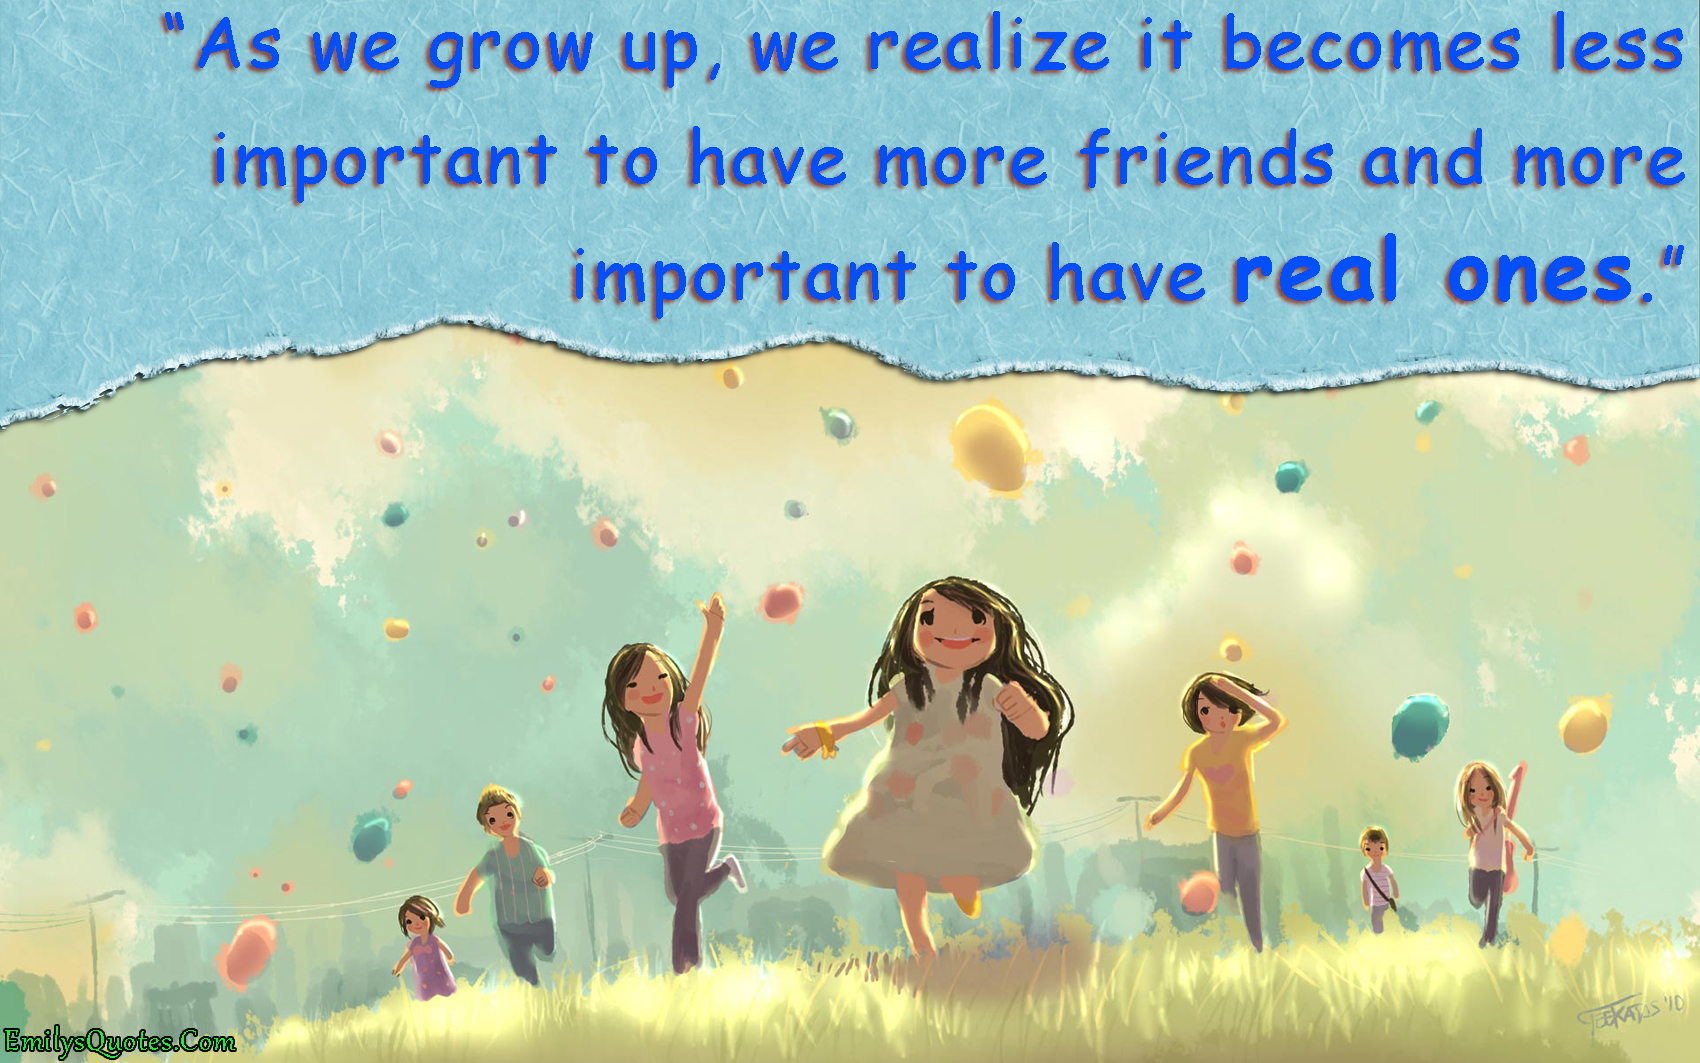 Inspirational Quotes About Friendships As We Grow Up We Realize It Becomes Less Important To Have More